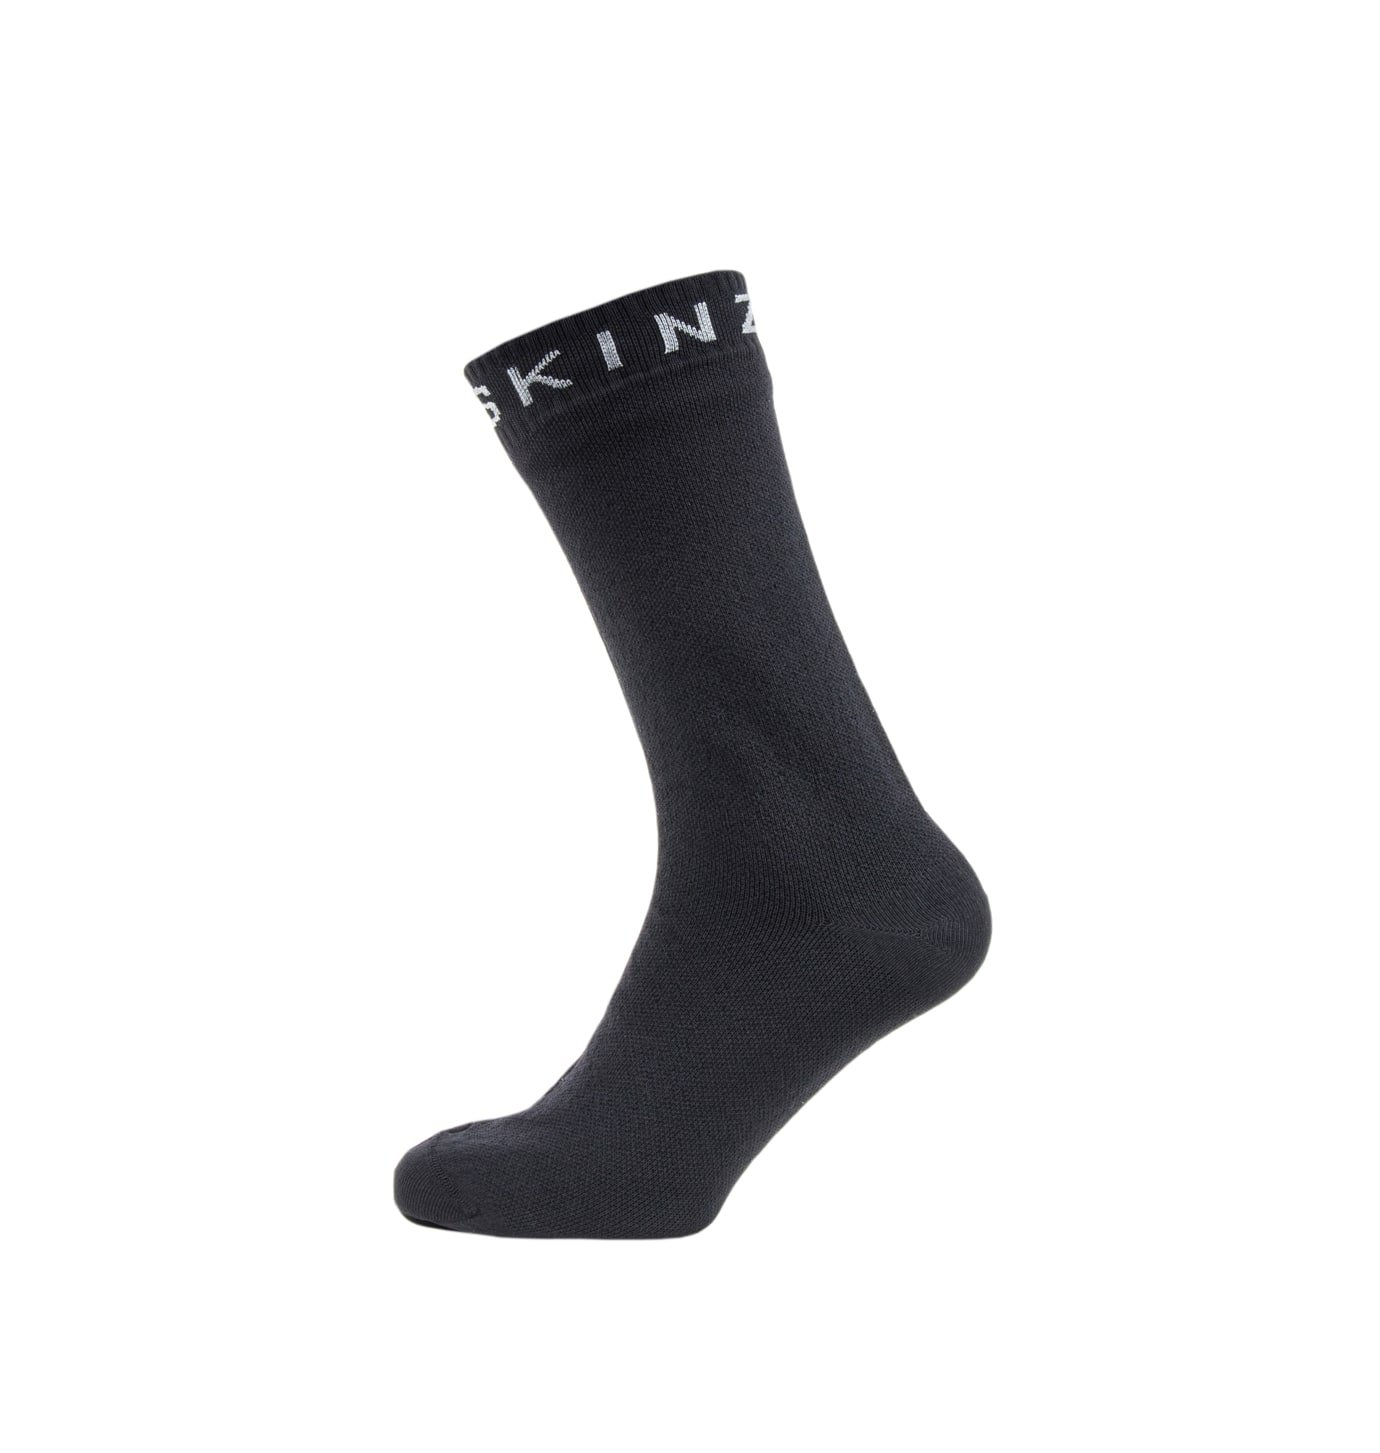 Seal Skinz Super Thin Mid Calcetines, Hombre SEALSKINZ